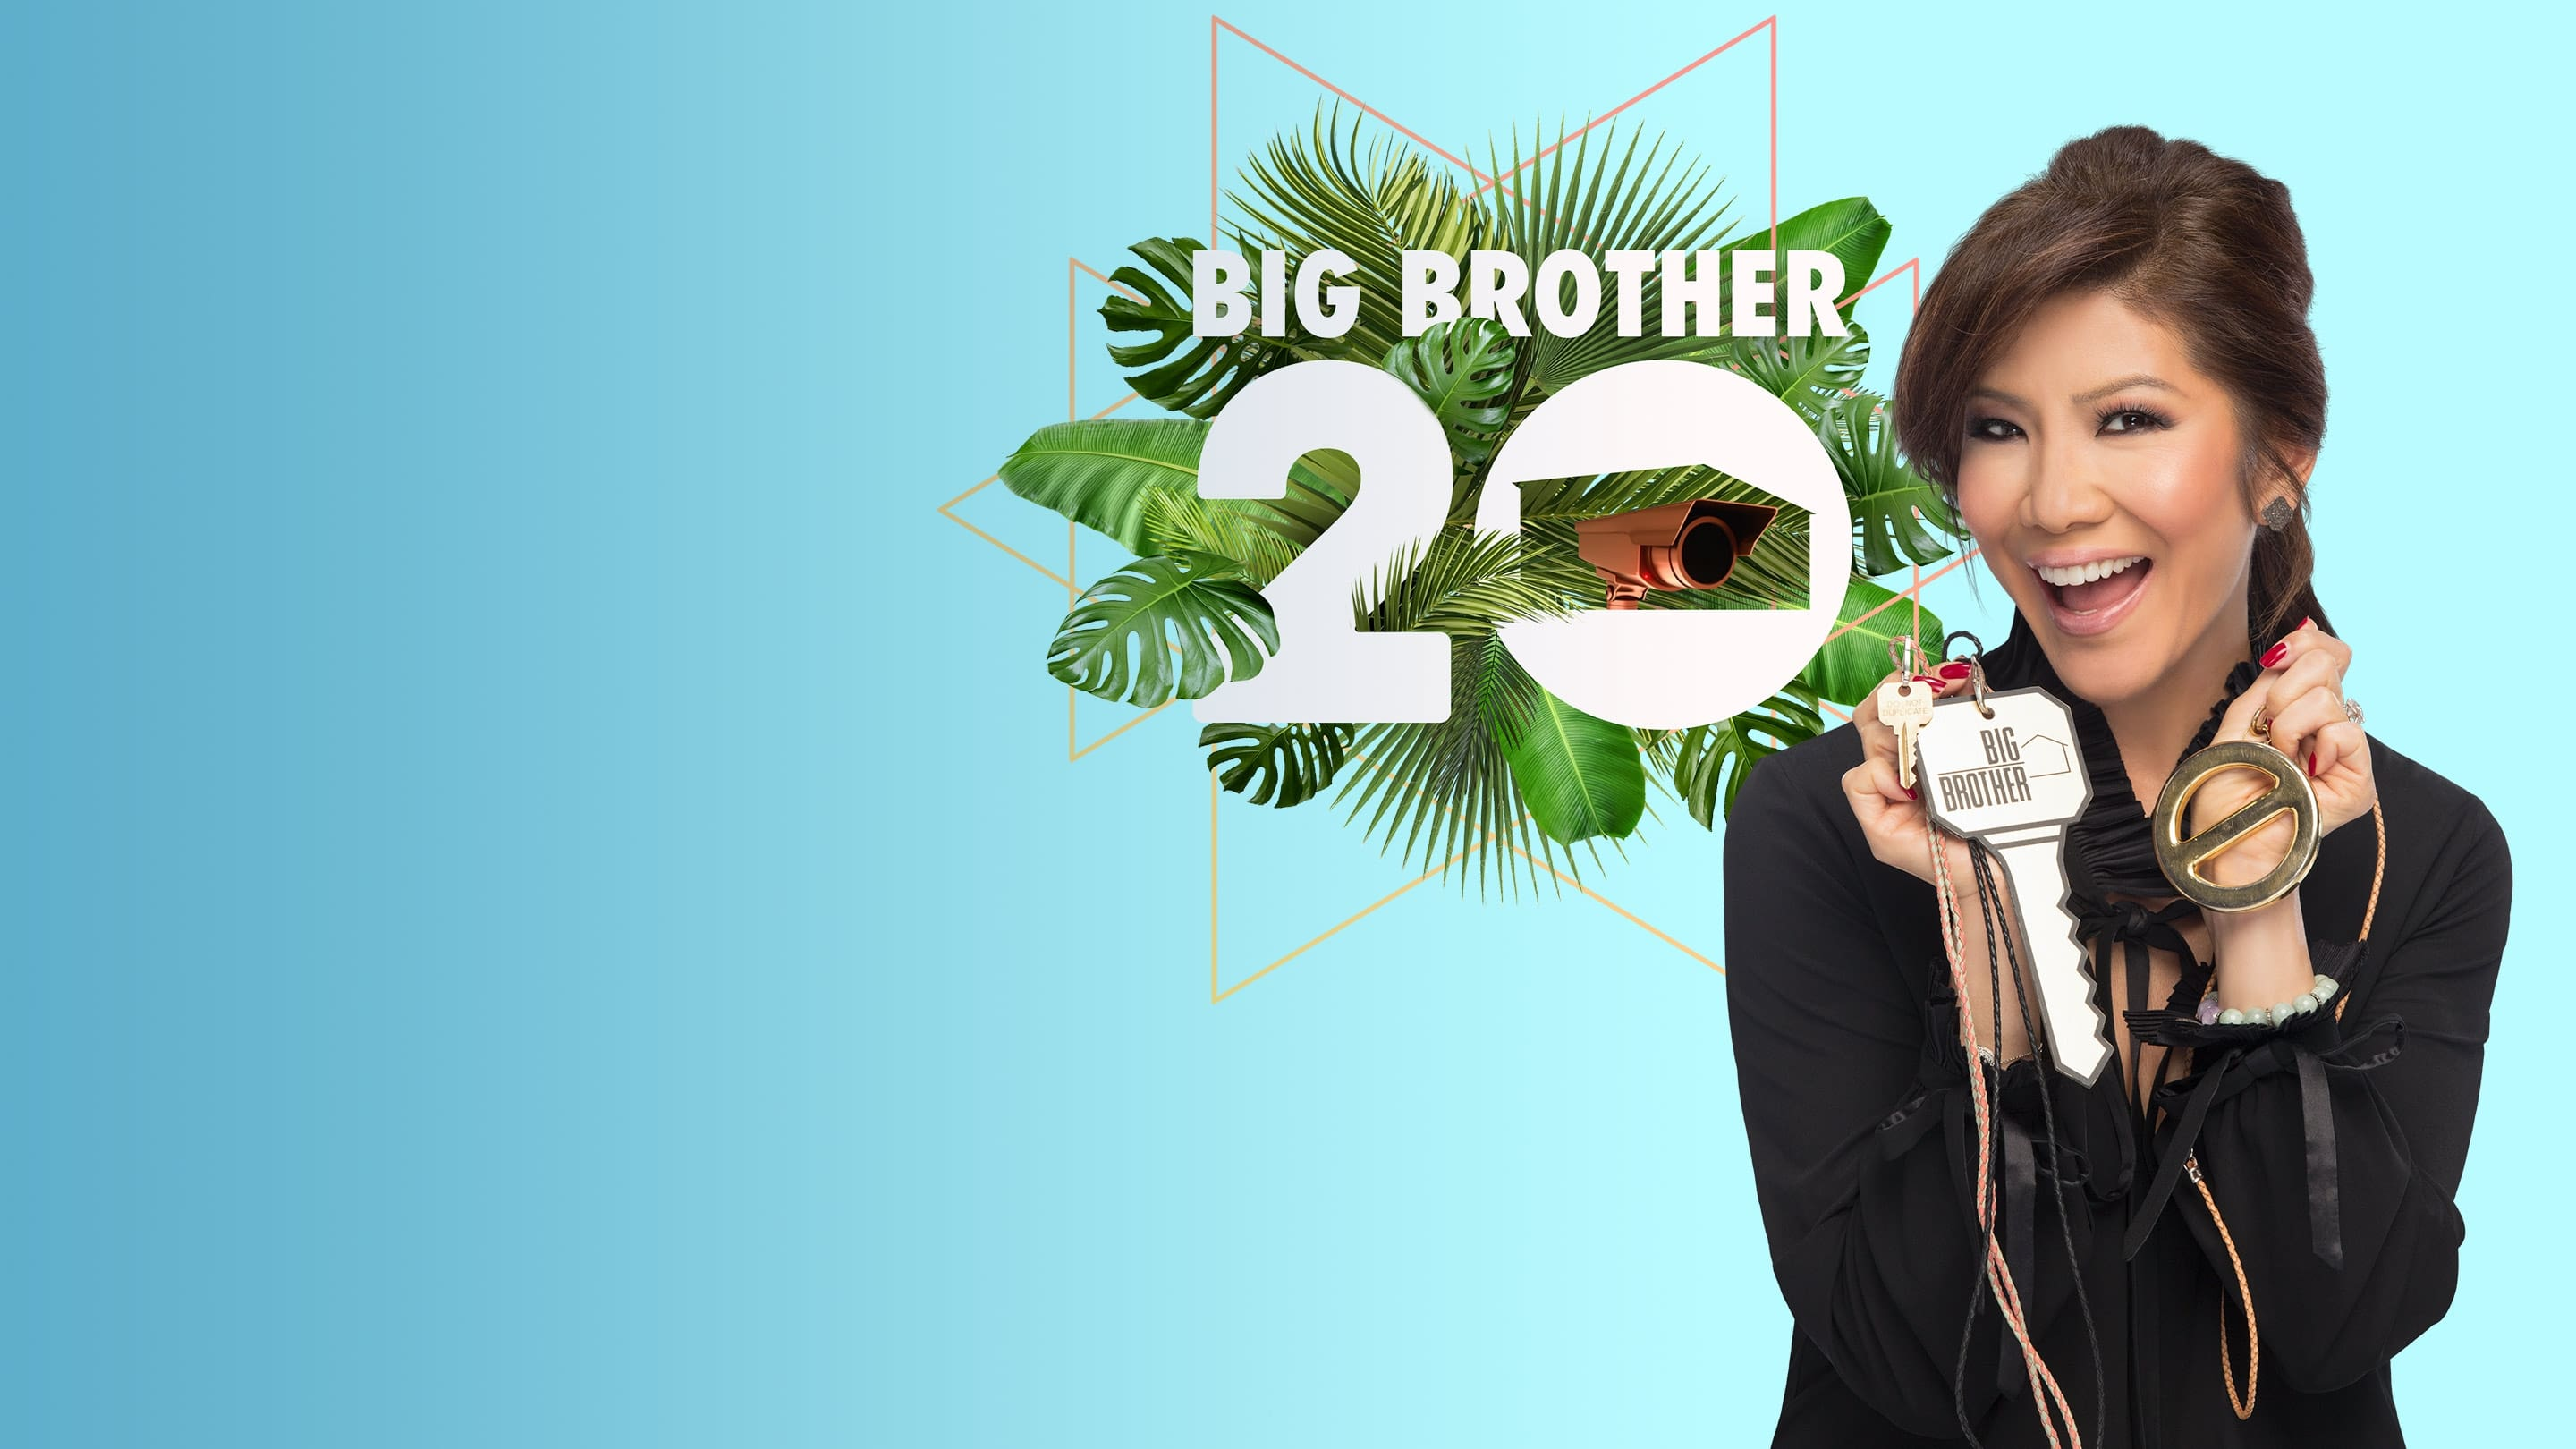 Big Brother - Season 3